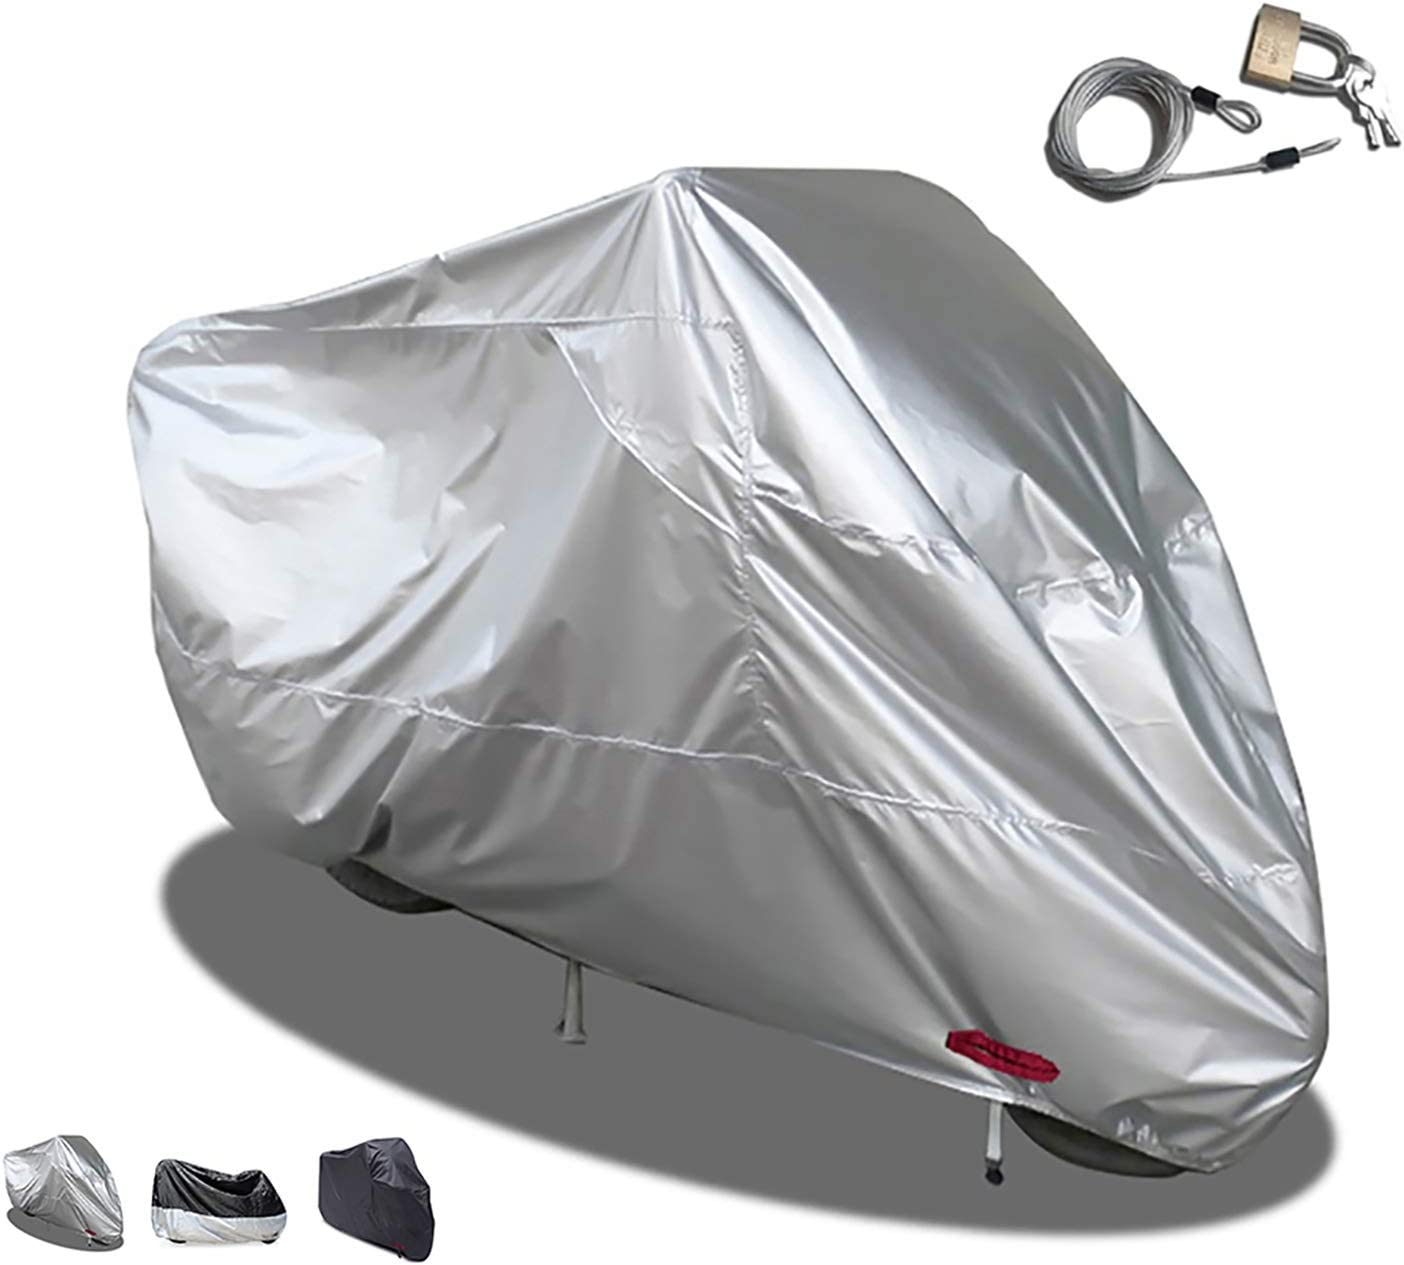 HWHCZ Motorcycle Covers Industry No. 1 Compatible Vespa G Cover with Washington Mall